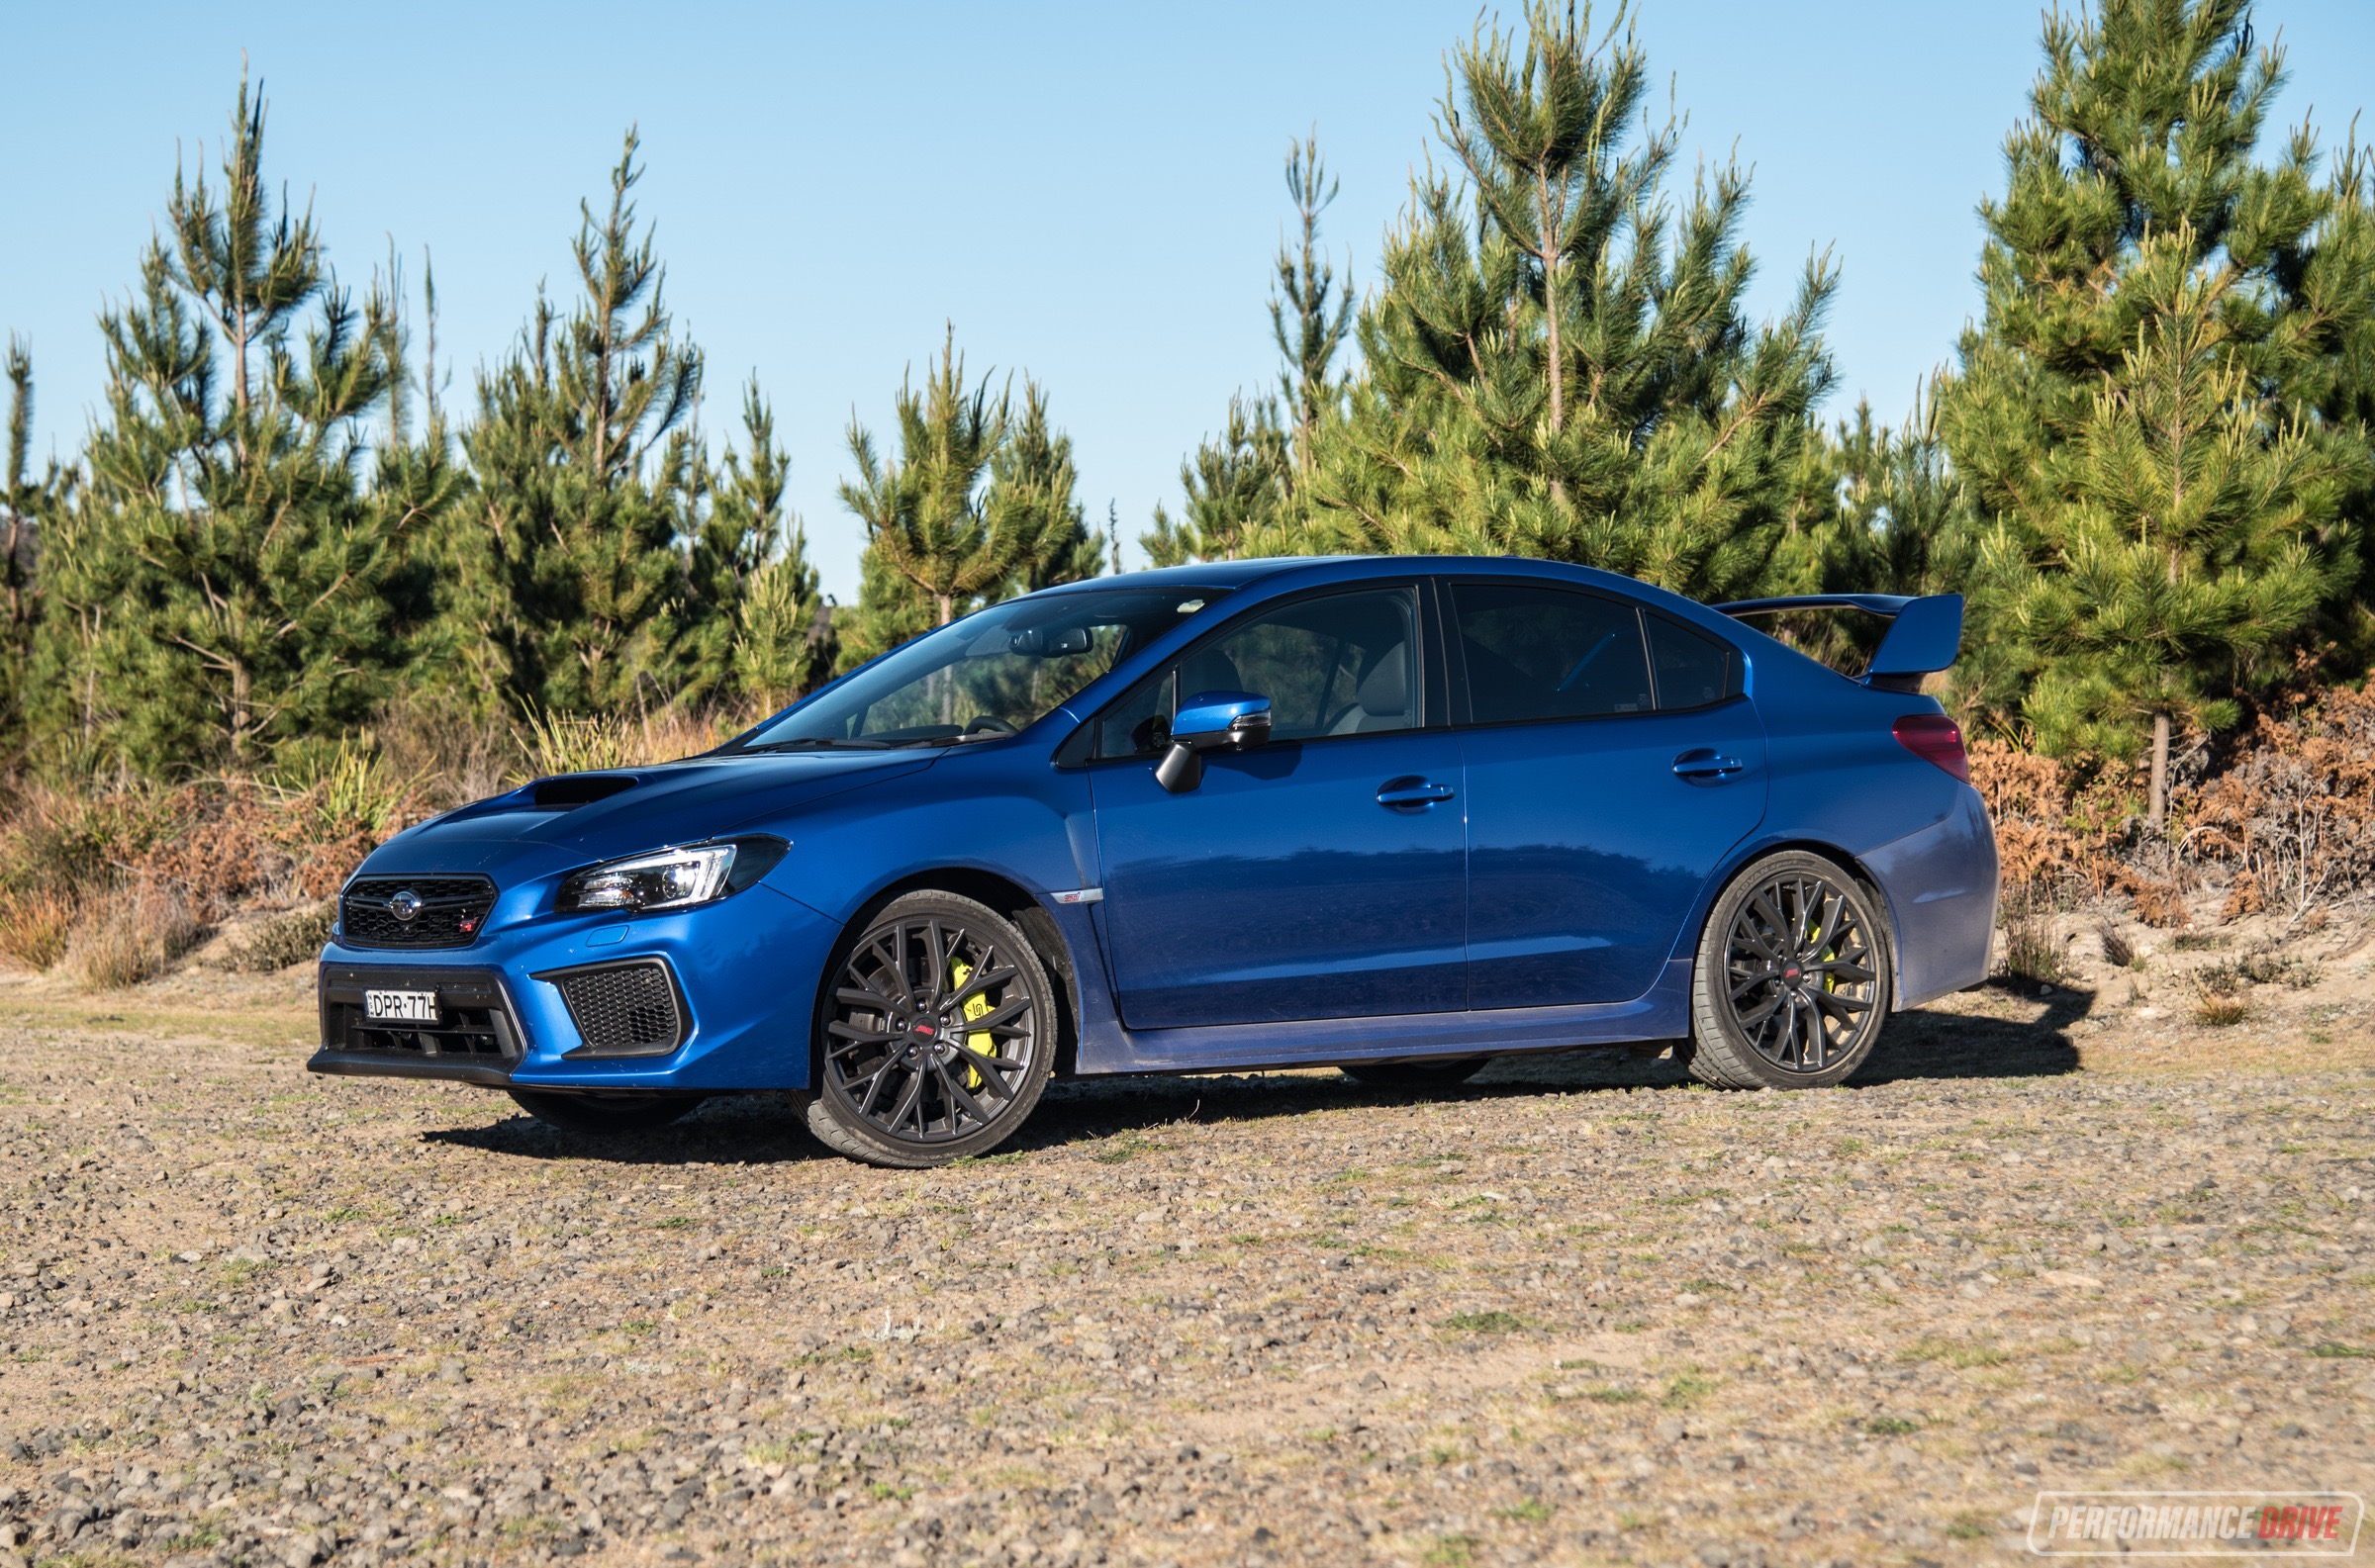 2018 Subaru Wrx Sti Review Specr Premium Video Performancedrive 19 Inch Wheels On